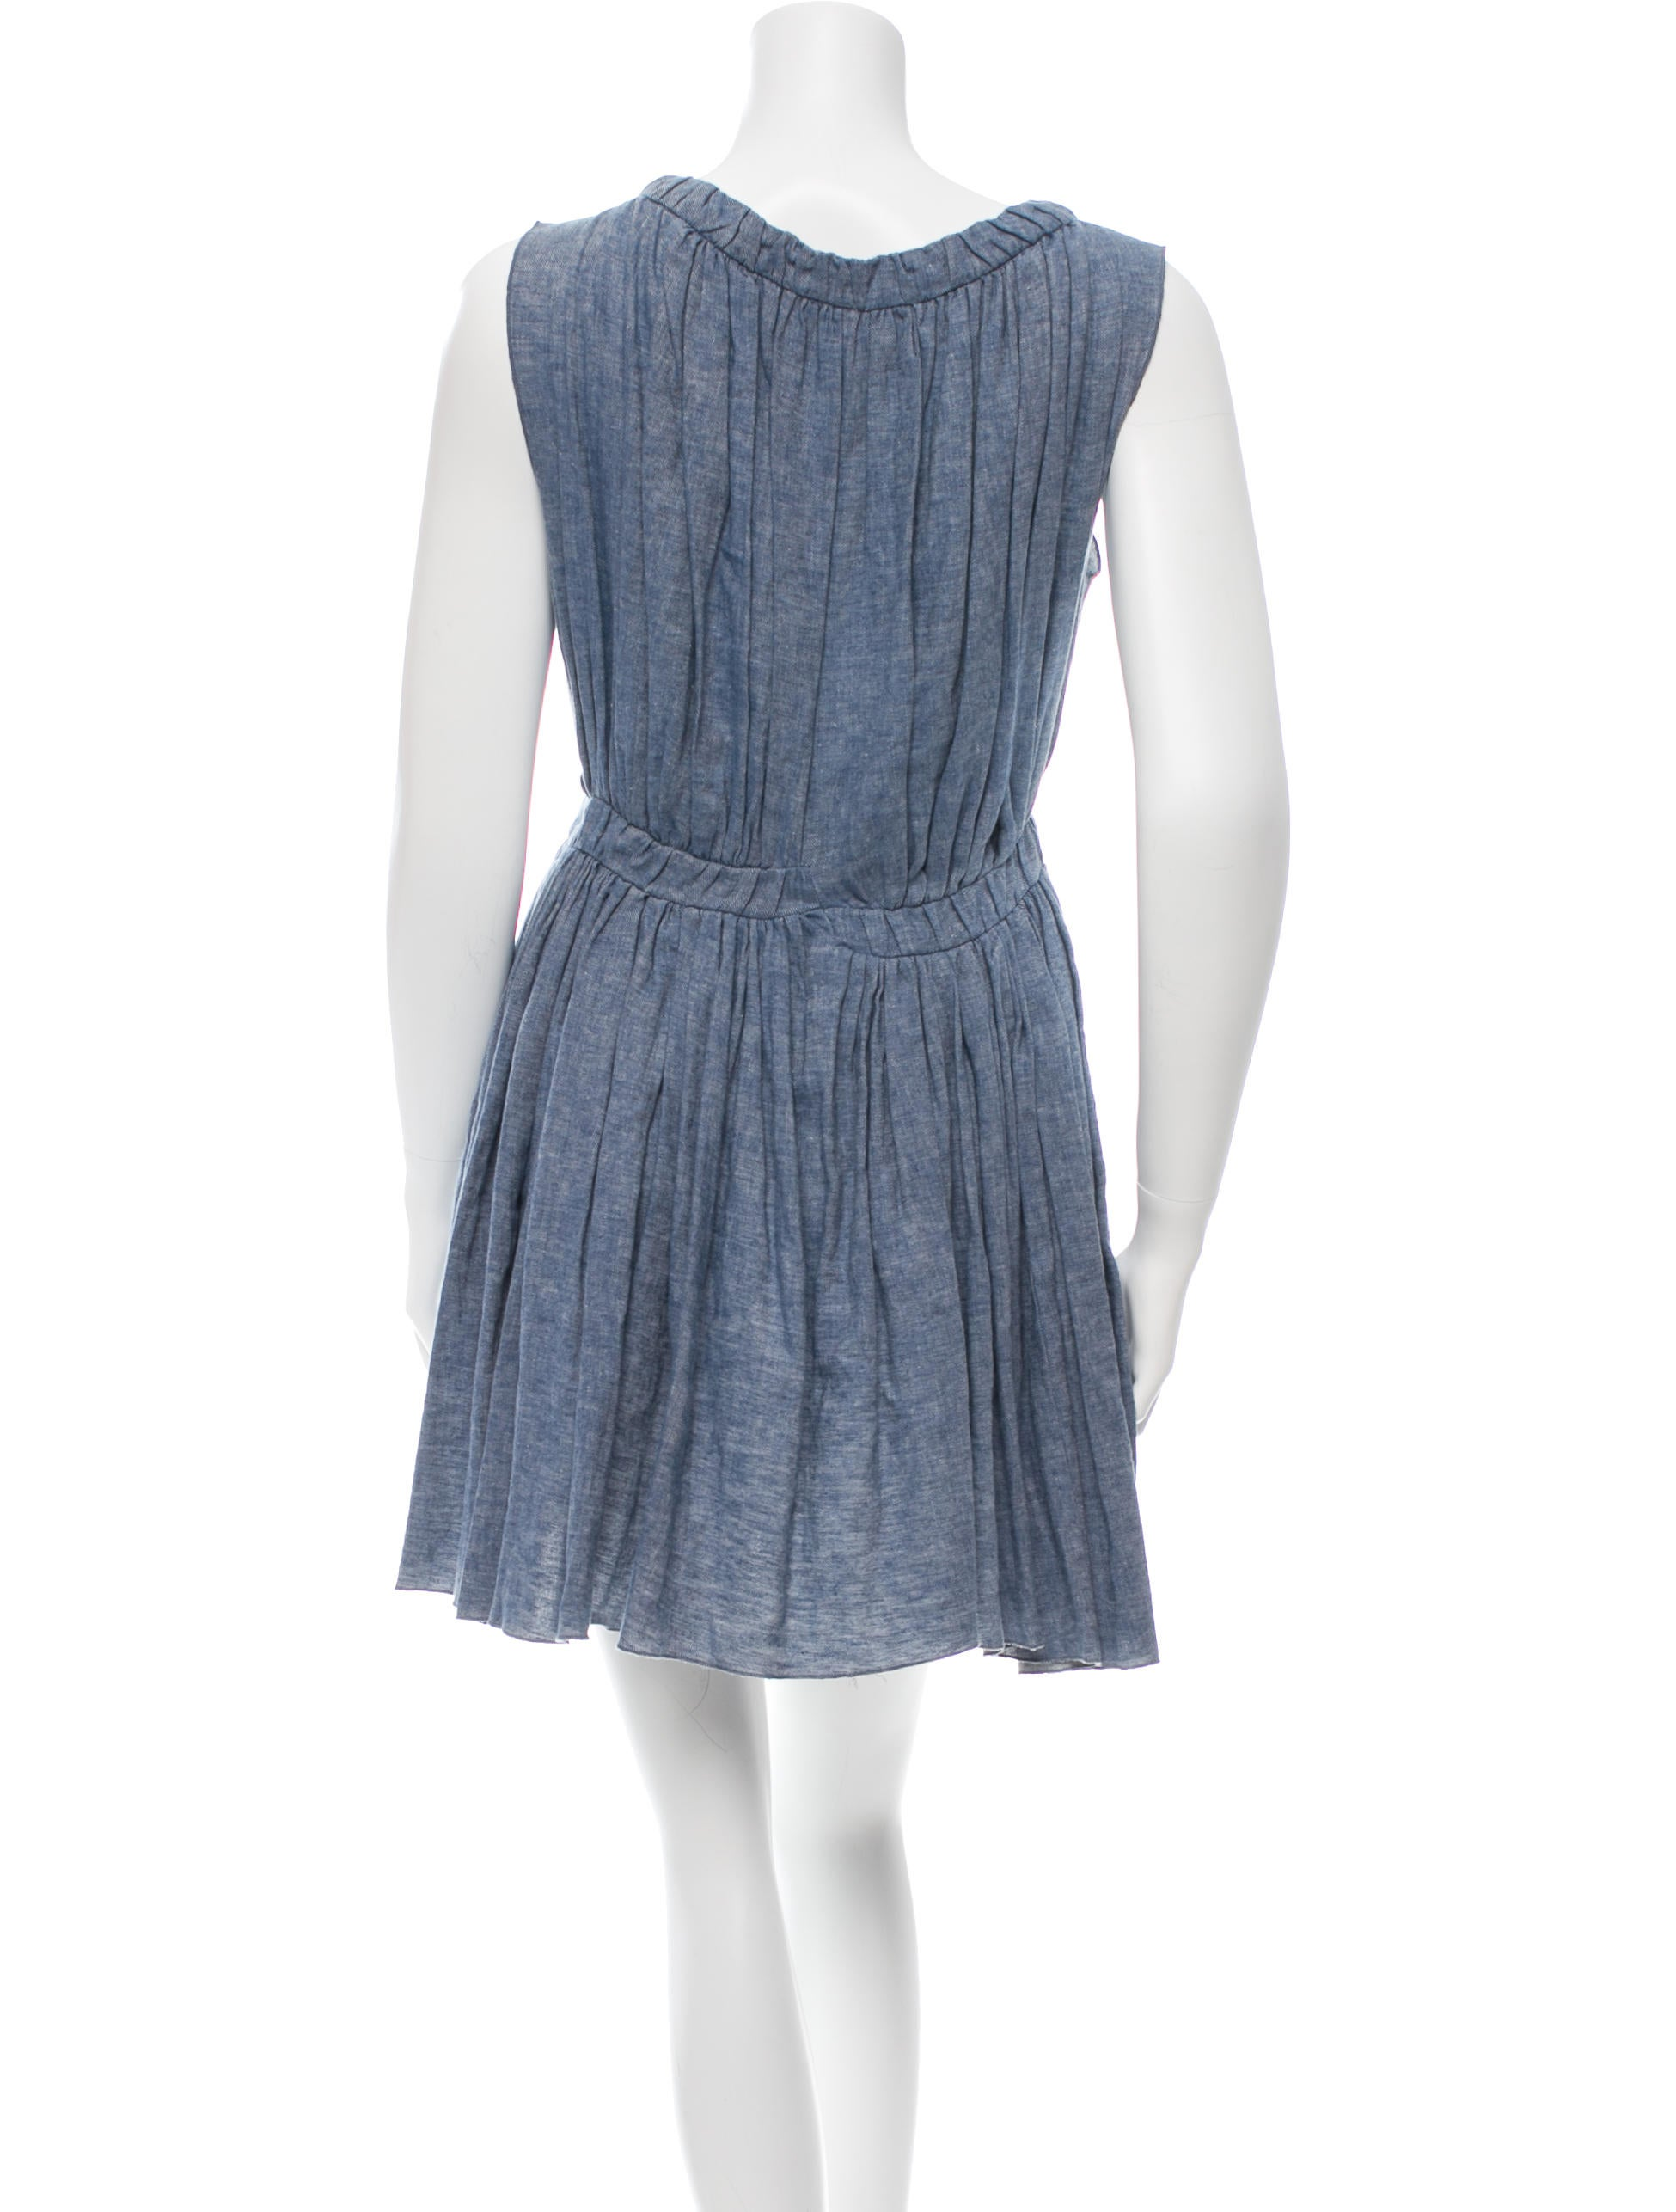 Thakoon sleeveless chambray dress clothing wthak24063 for Chambray dress